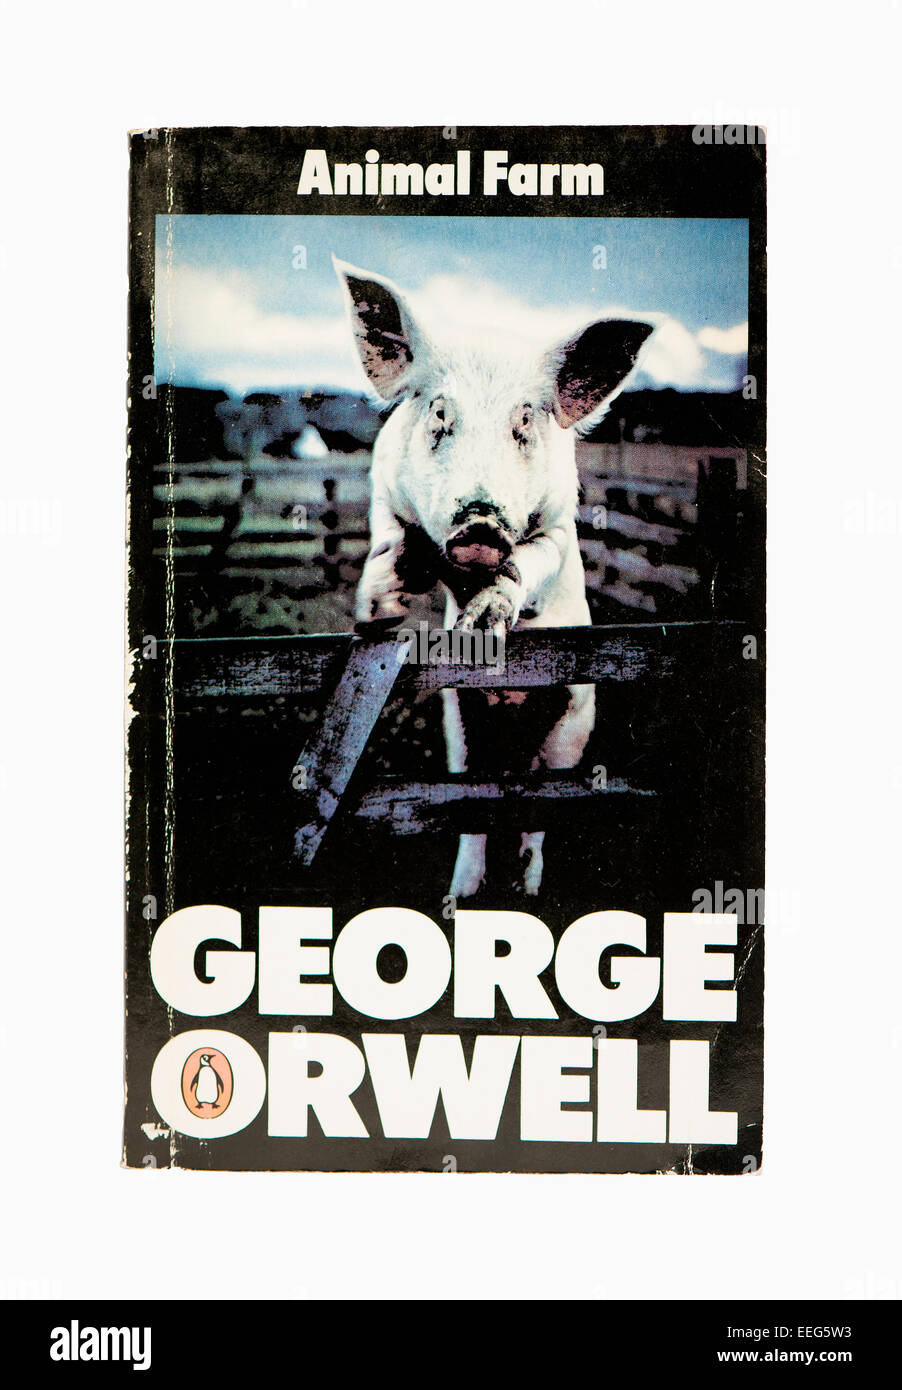 Classic Book Cover Download : George orwell animal farm penguin classic book cover stock